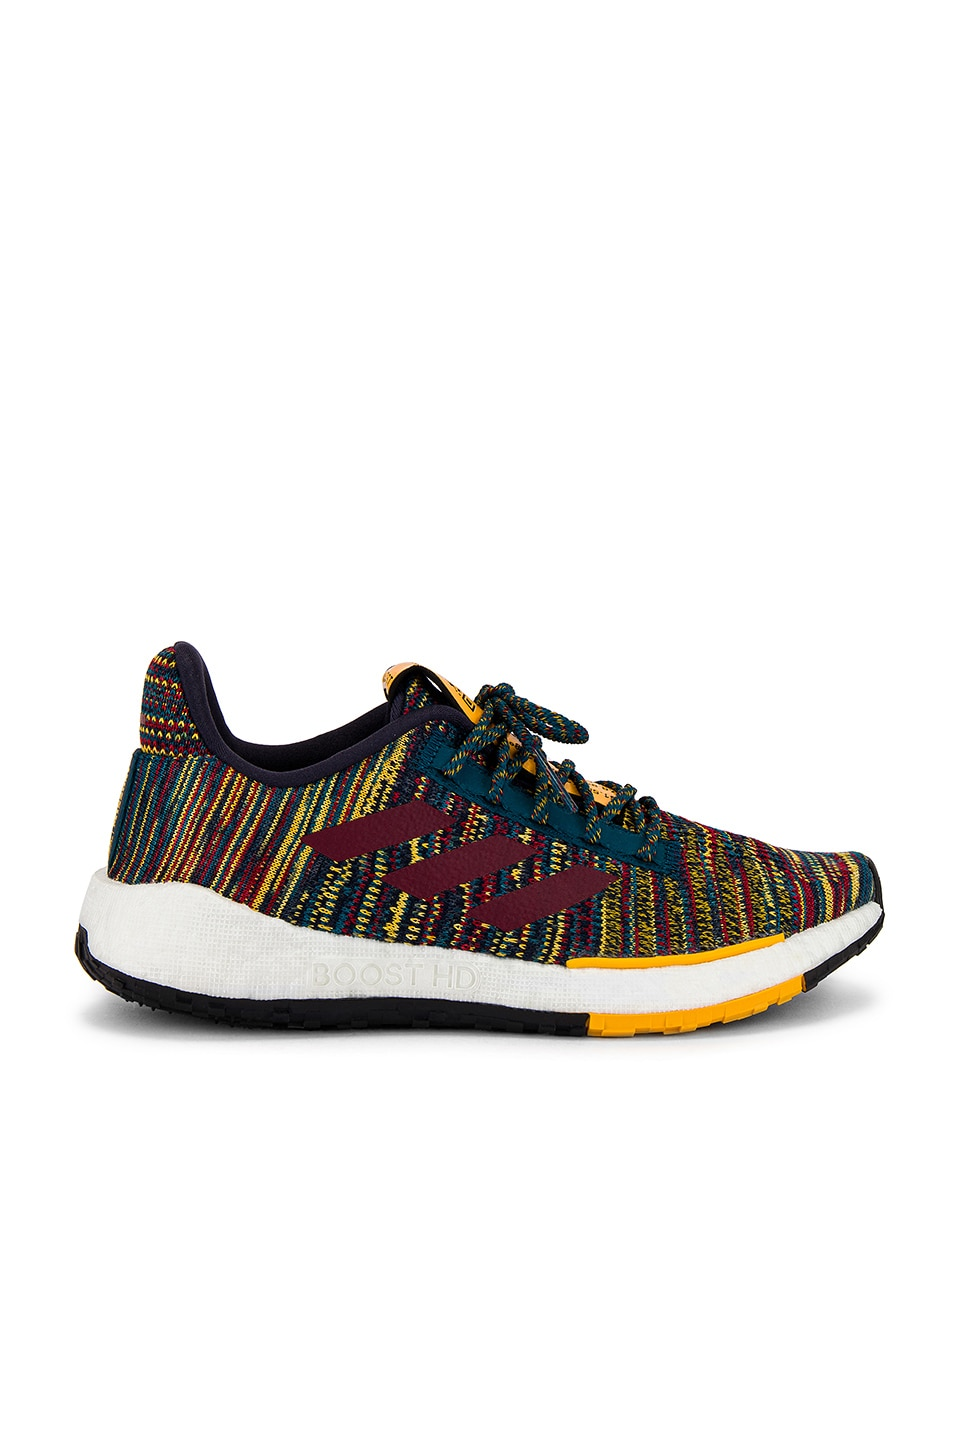 adidas by MISSONI Pulseboost HD Sneaker in Tech Mineral, Collegiate Burgundy & Active Gold